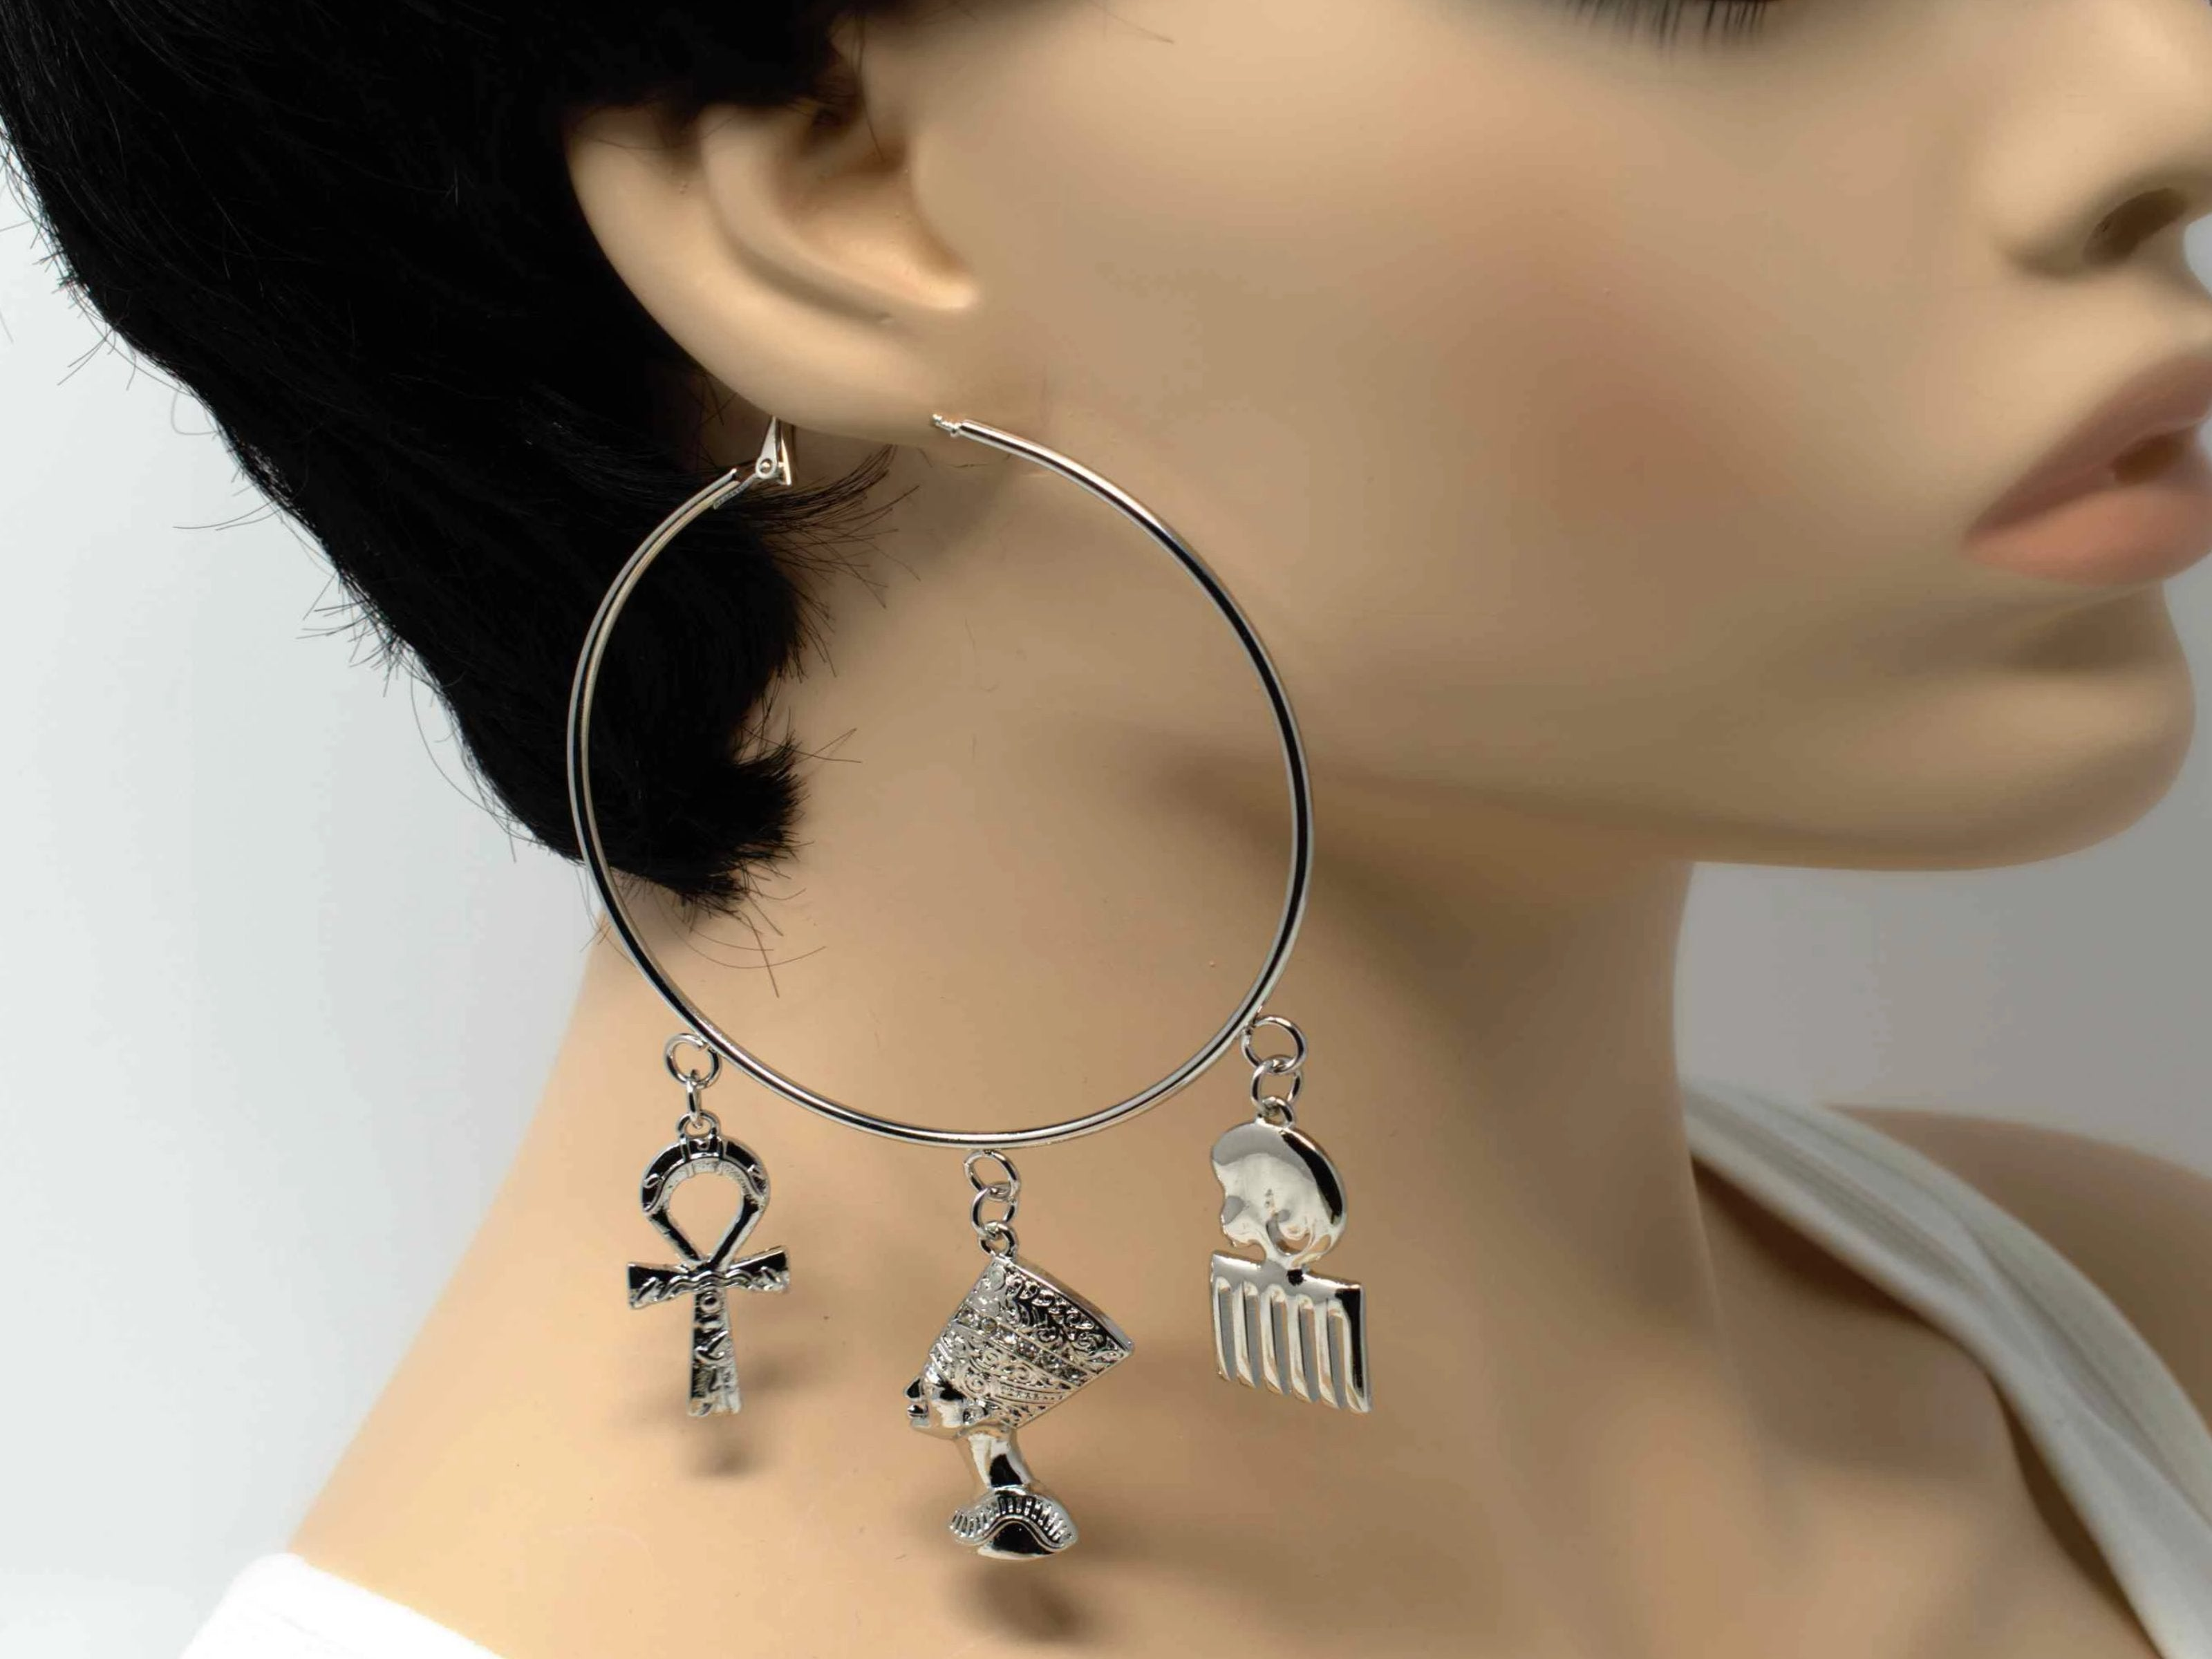 A radiant stylish afro chic silver hoop fashion earring with afro centric charms.